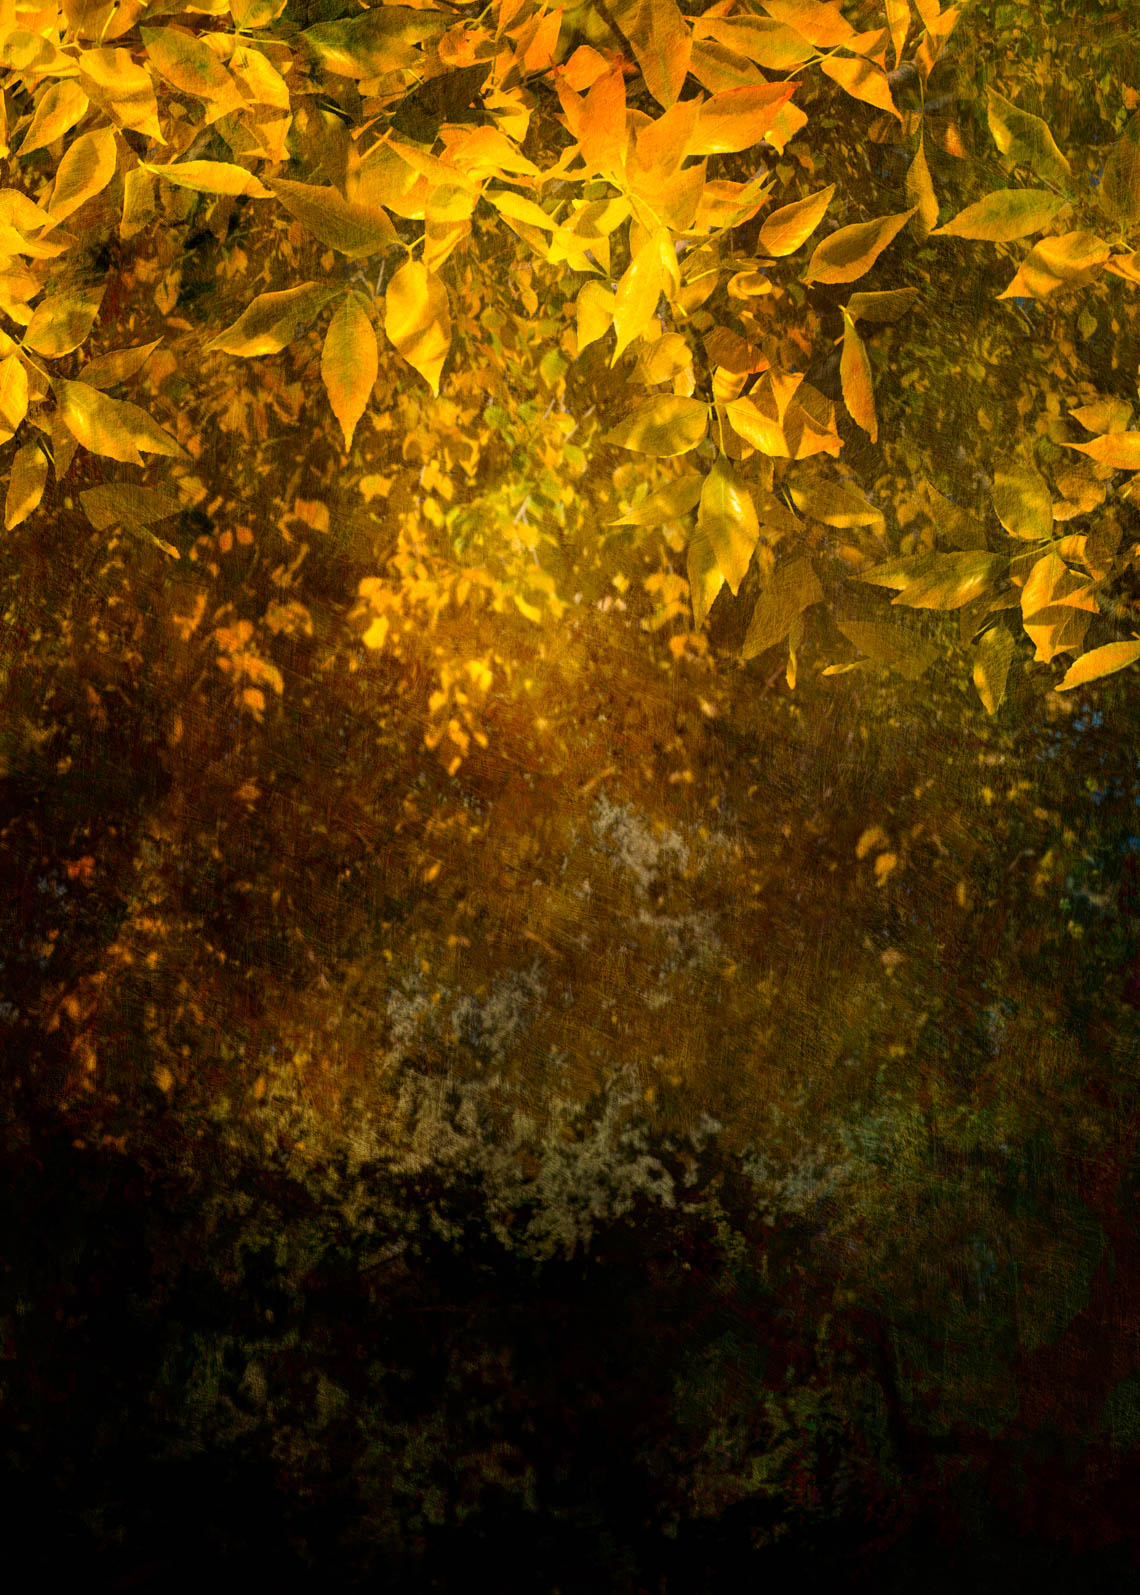 Canopy of Yellow Leaves, 2017